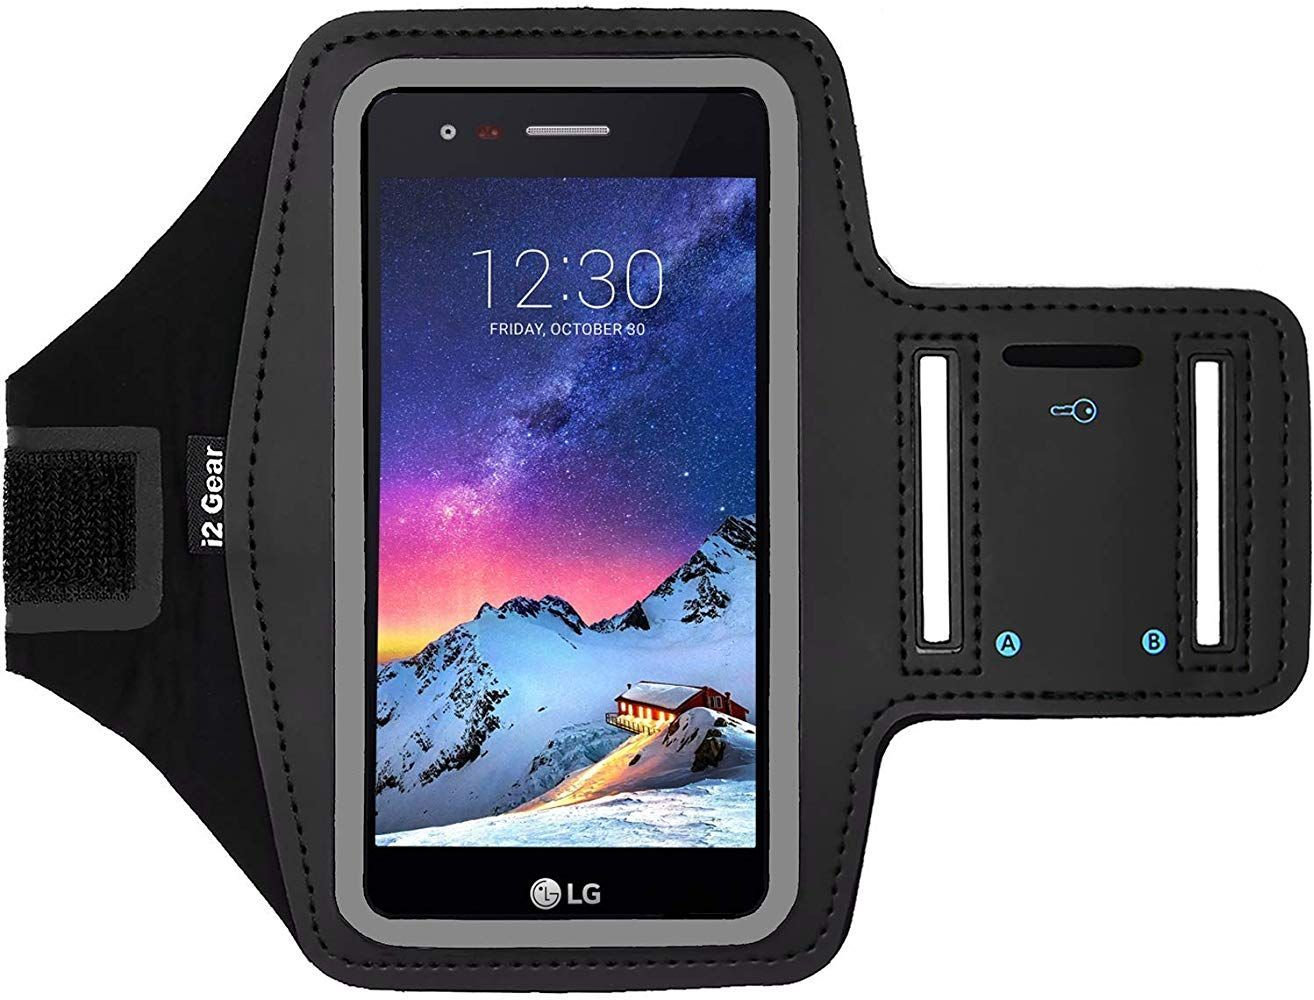 i2 Gear Fitness Cell Phone Armband for Running - Workout Phone Holder with Adjustable Strap Reflective Edge - Arm Band Case for LG K8 (Black) #watches #jewelry #fashions #trends #moda #women #men #armband #armbandworkouts i2 Gear Fitness Cell Phone Armband for Running - Workout Phone Holder with Adjustable Strap Reflective Edge - Arm Band Case for LG K8 (Black) #watches #jewelry #fashions #trends #moda #women #men #armband #armbandworkouts